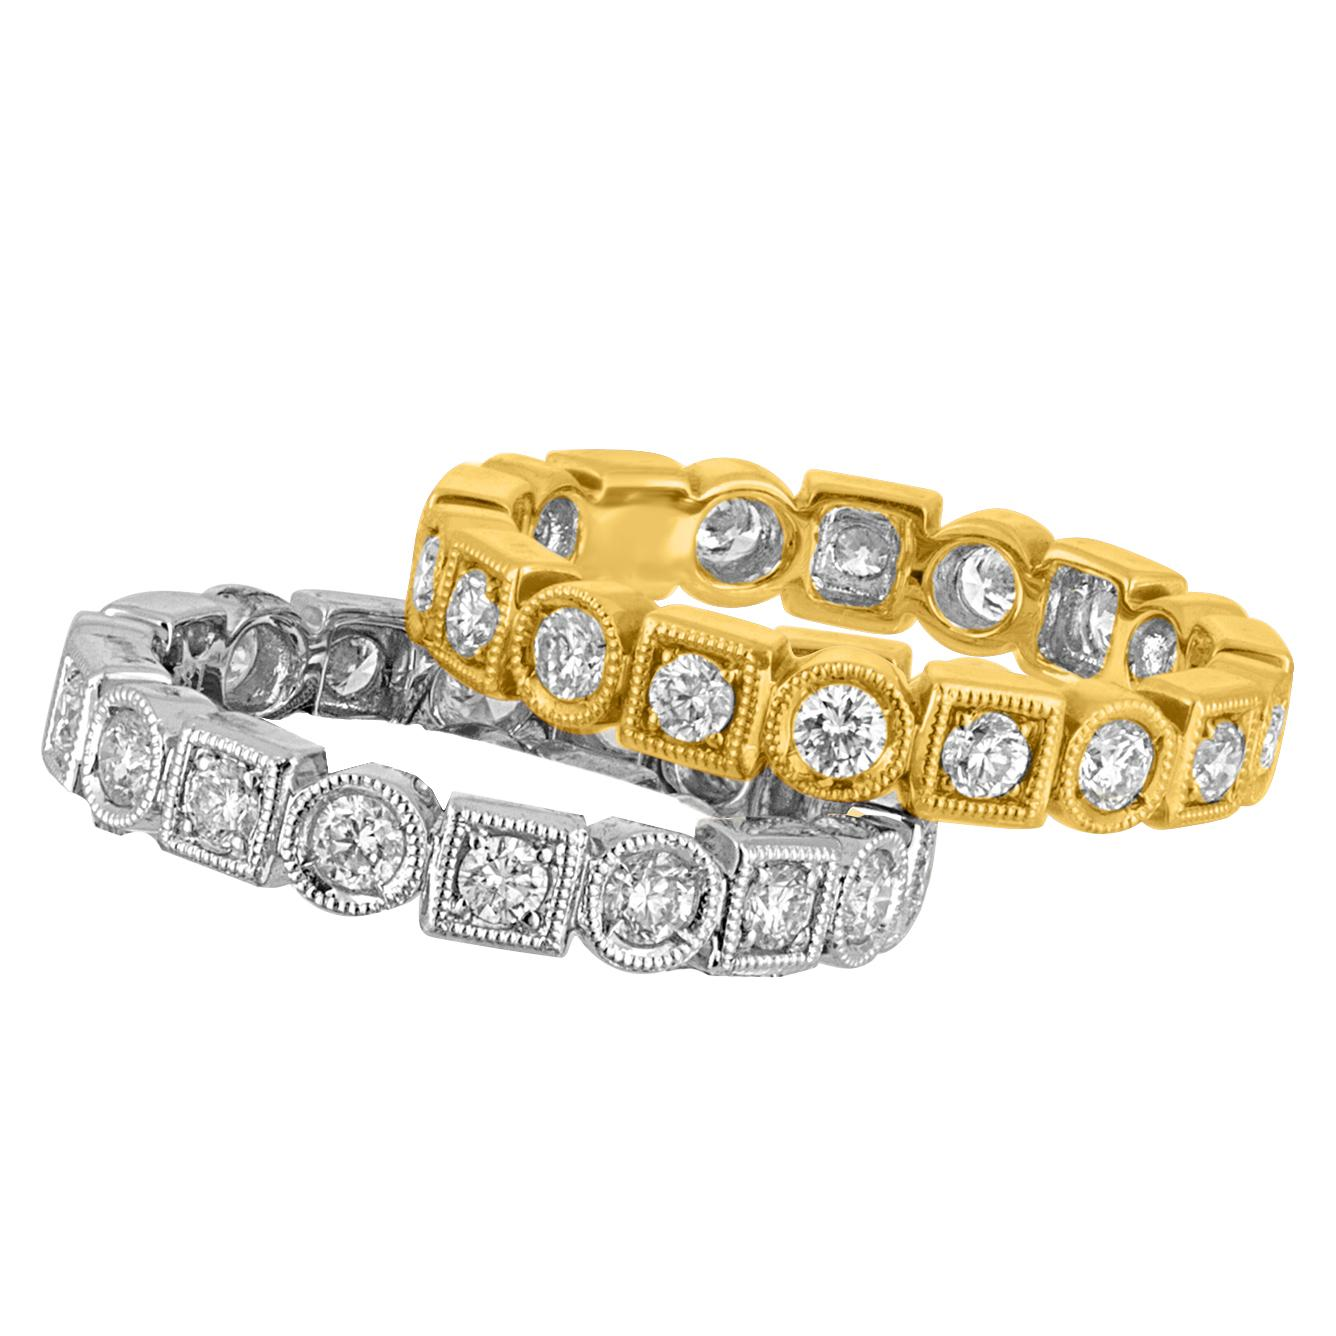 1.90 Carats Set Of 2 Stackable Diamond Gold Eternity Band Rings